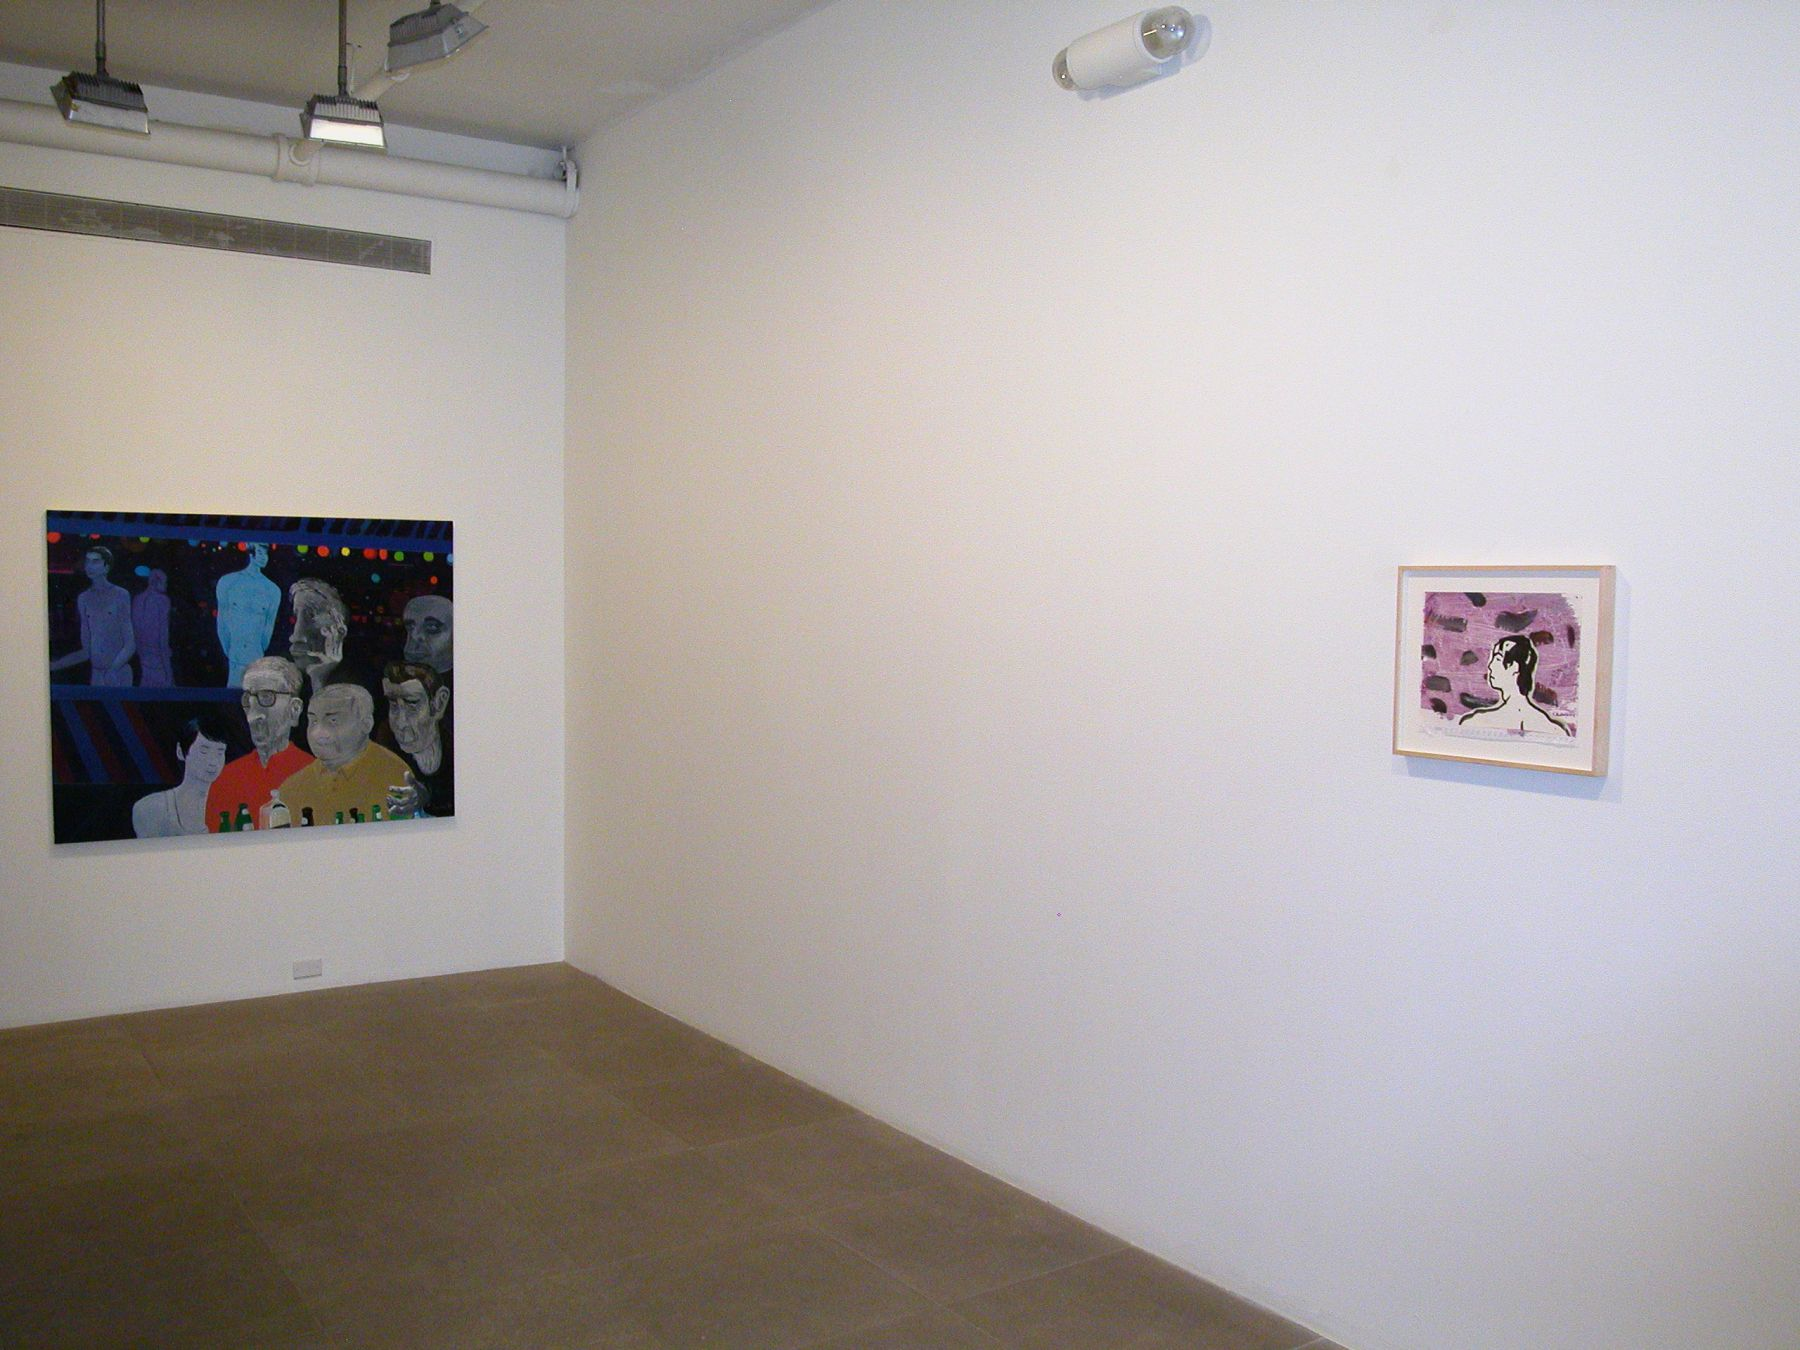 Installation view, Greene Naftali, New York, 2006